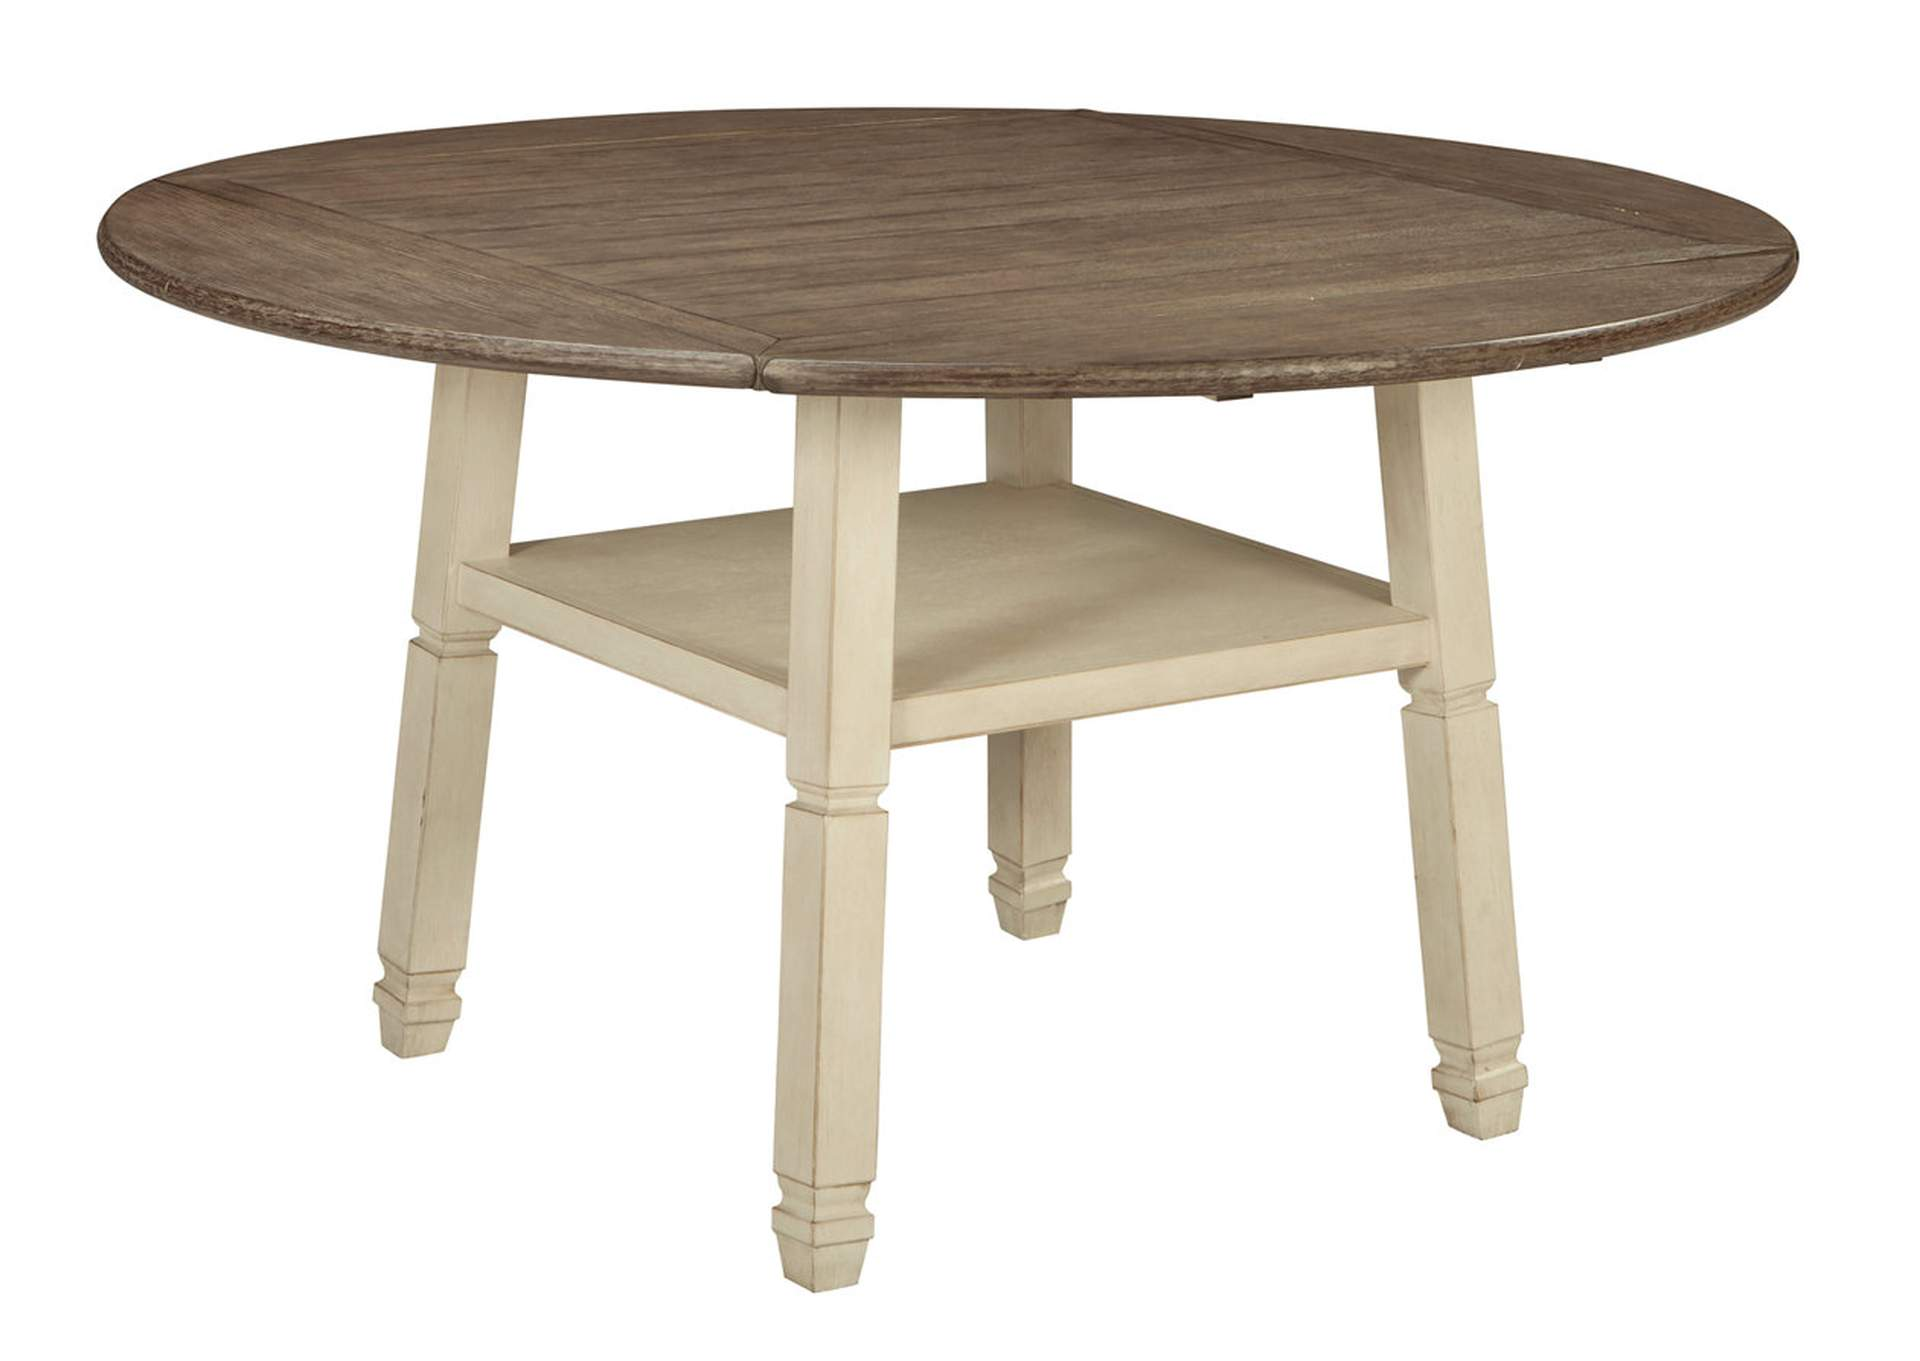 Bolanburg Antique White Round Drop Leaf Counter Table,Signature Design By Ashley